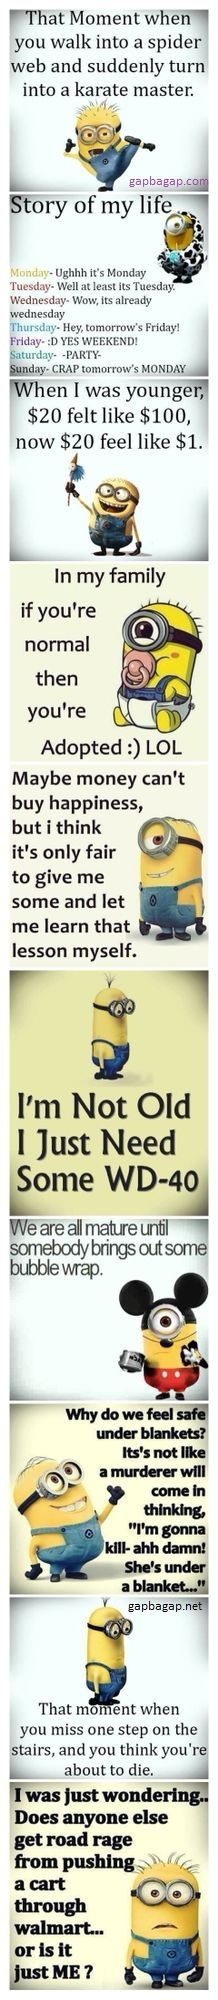 Top 10 #Funny #Quotes By The #Minions